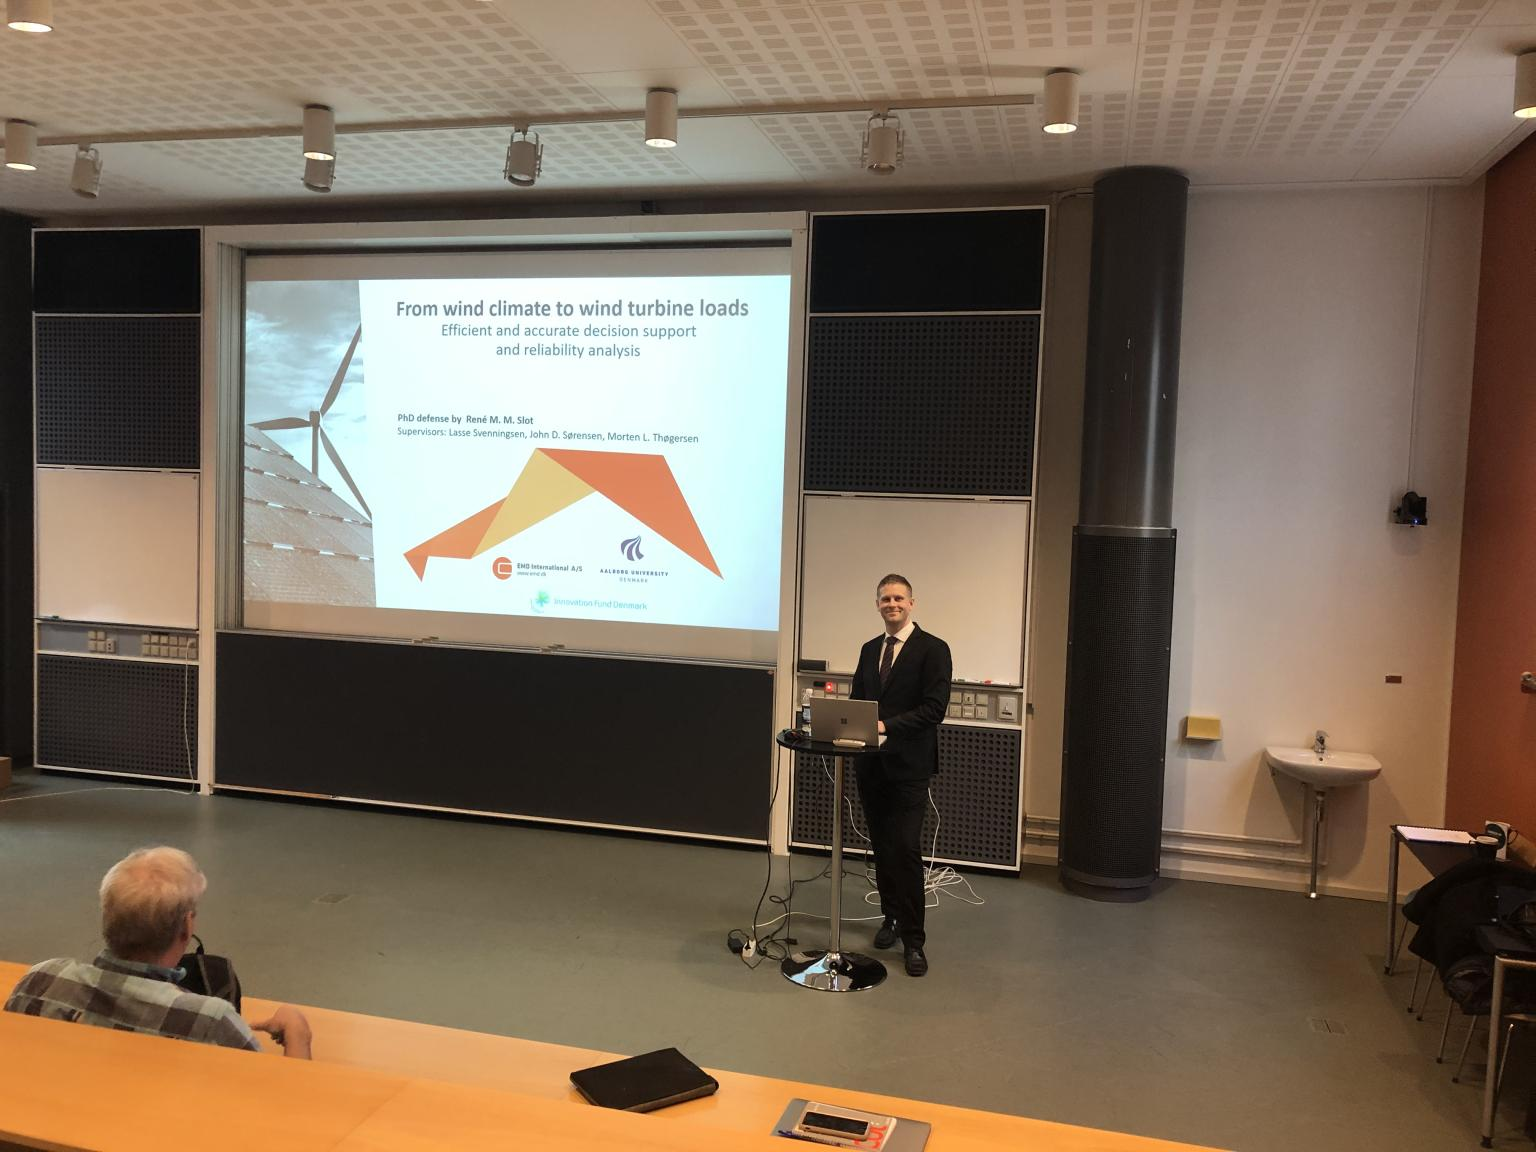 phd thesis on wind energy – Forums